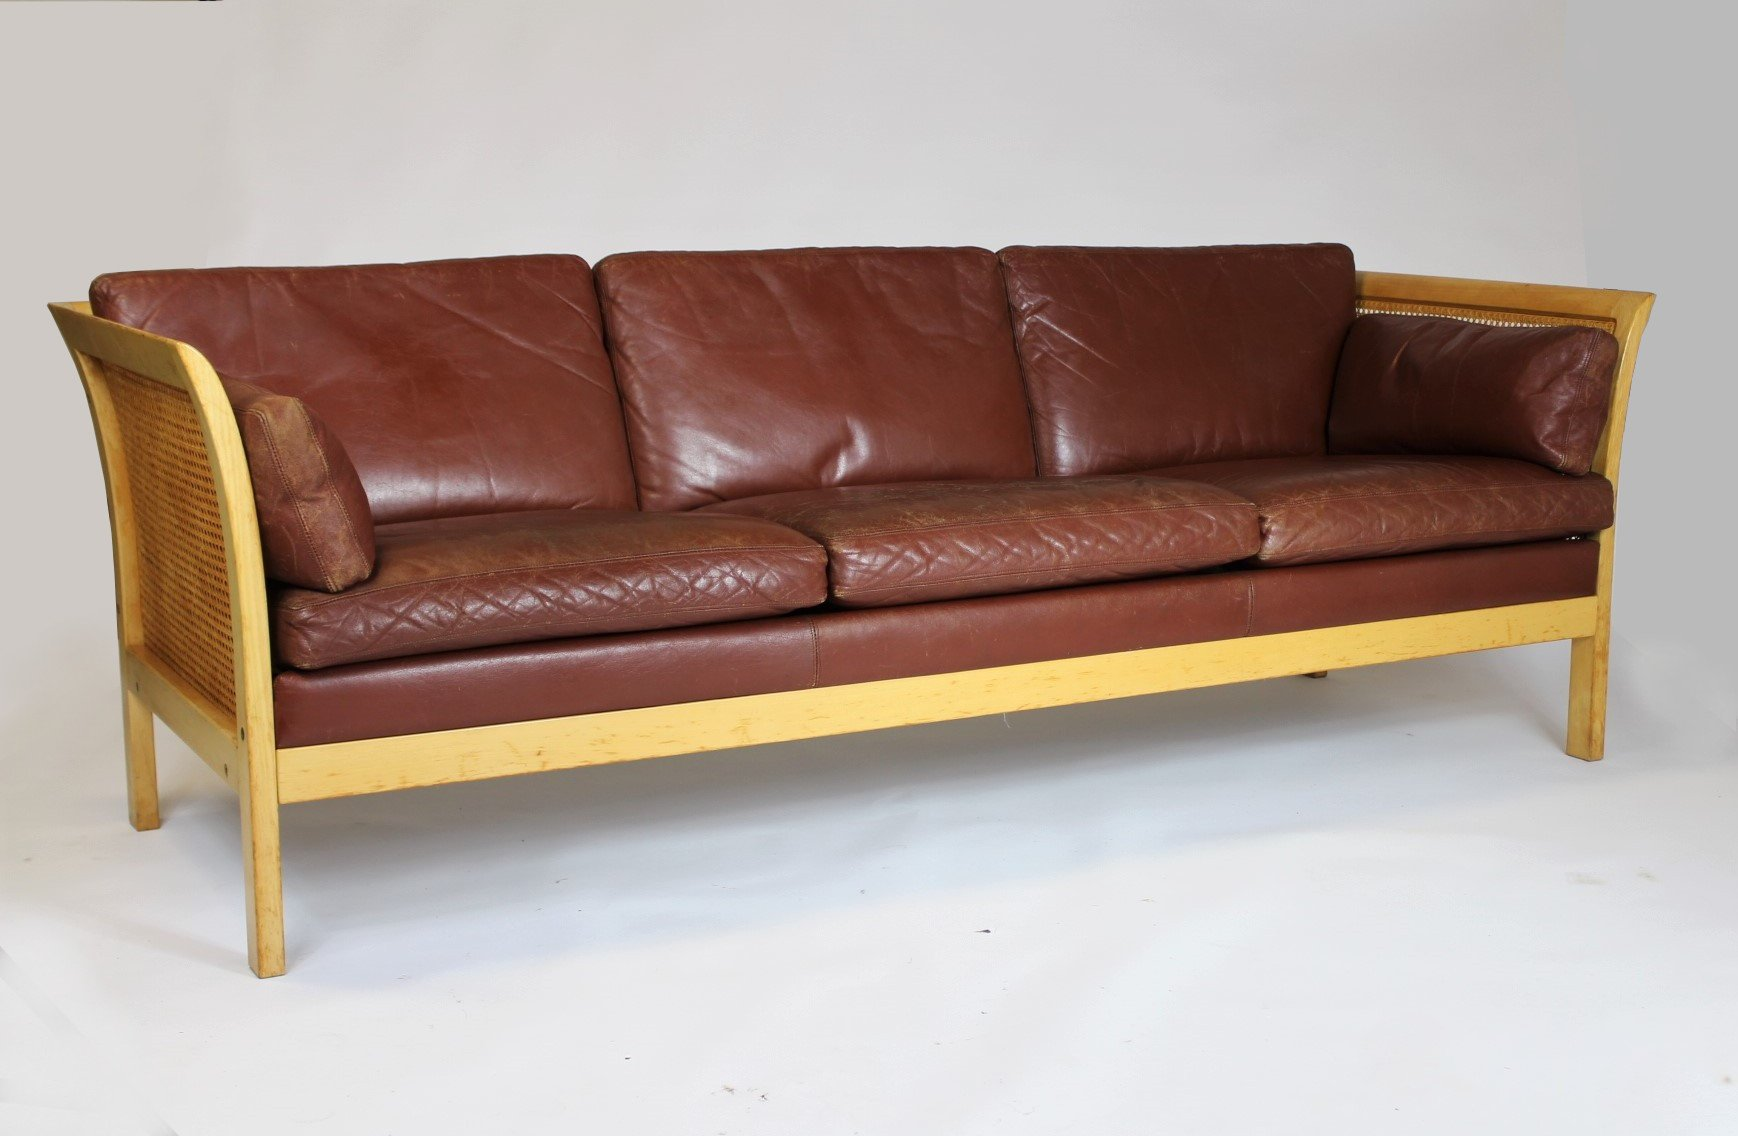 Swedish Leather Sofa By Arne Norell 1960s For Sale At Pamono